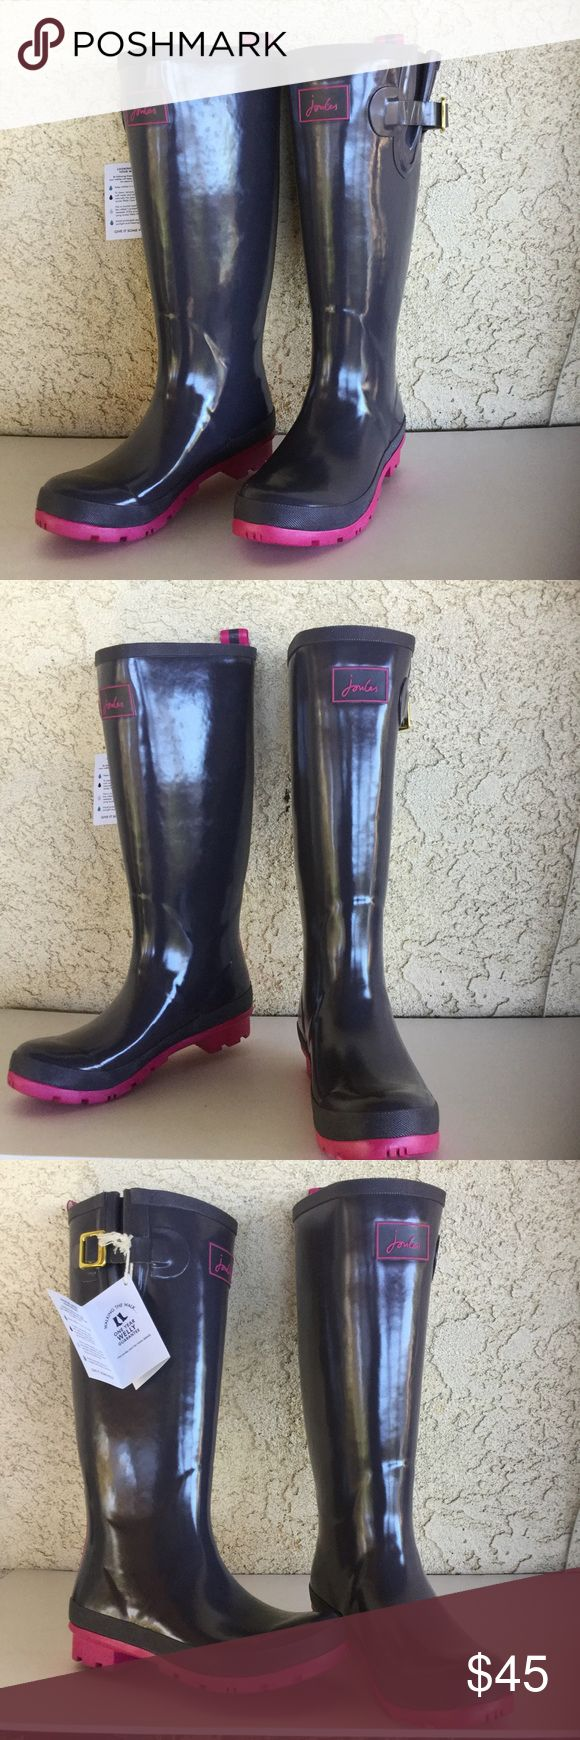 Joules Wellies Rain Boots Gray & Pink Glossy rain boots by Joules, NWT. Size 7. Joules Shoes Winter & Rain Boots